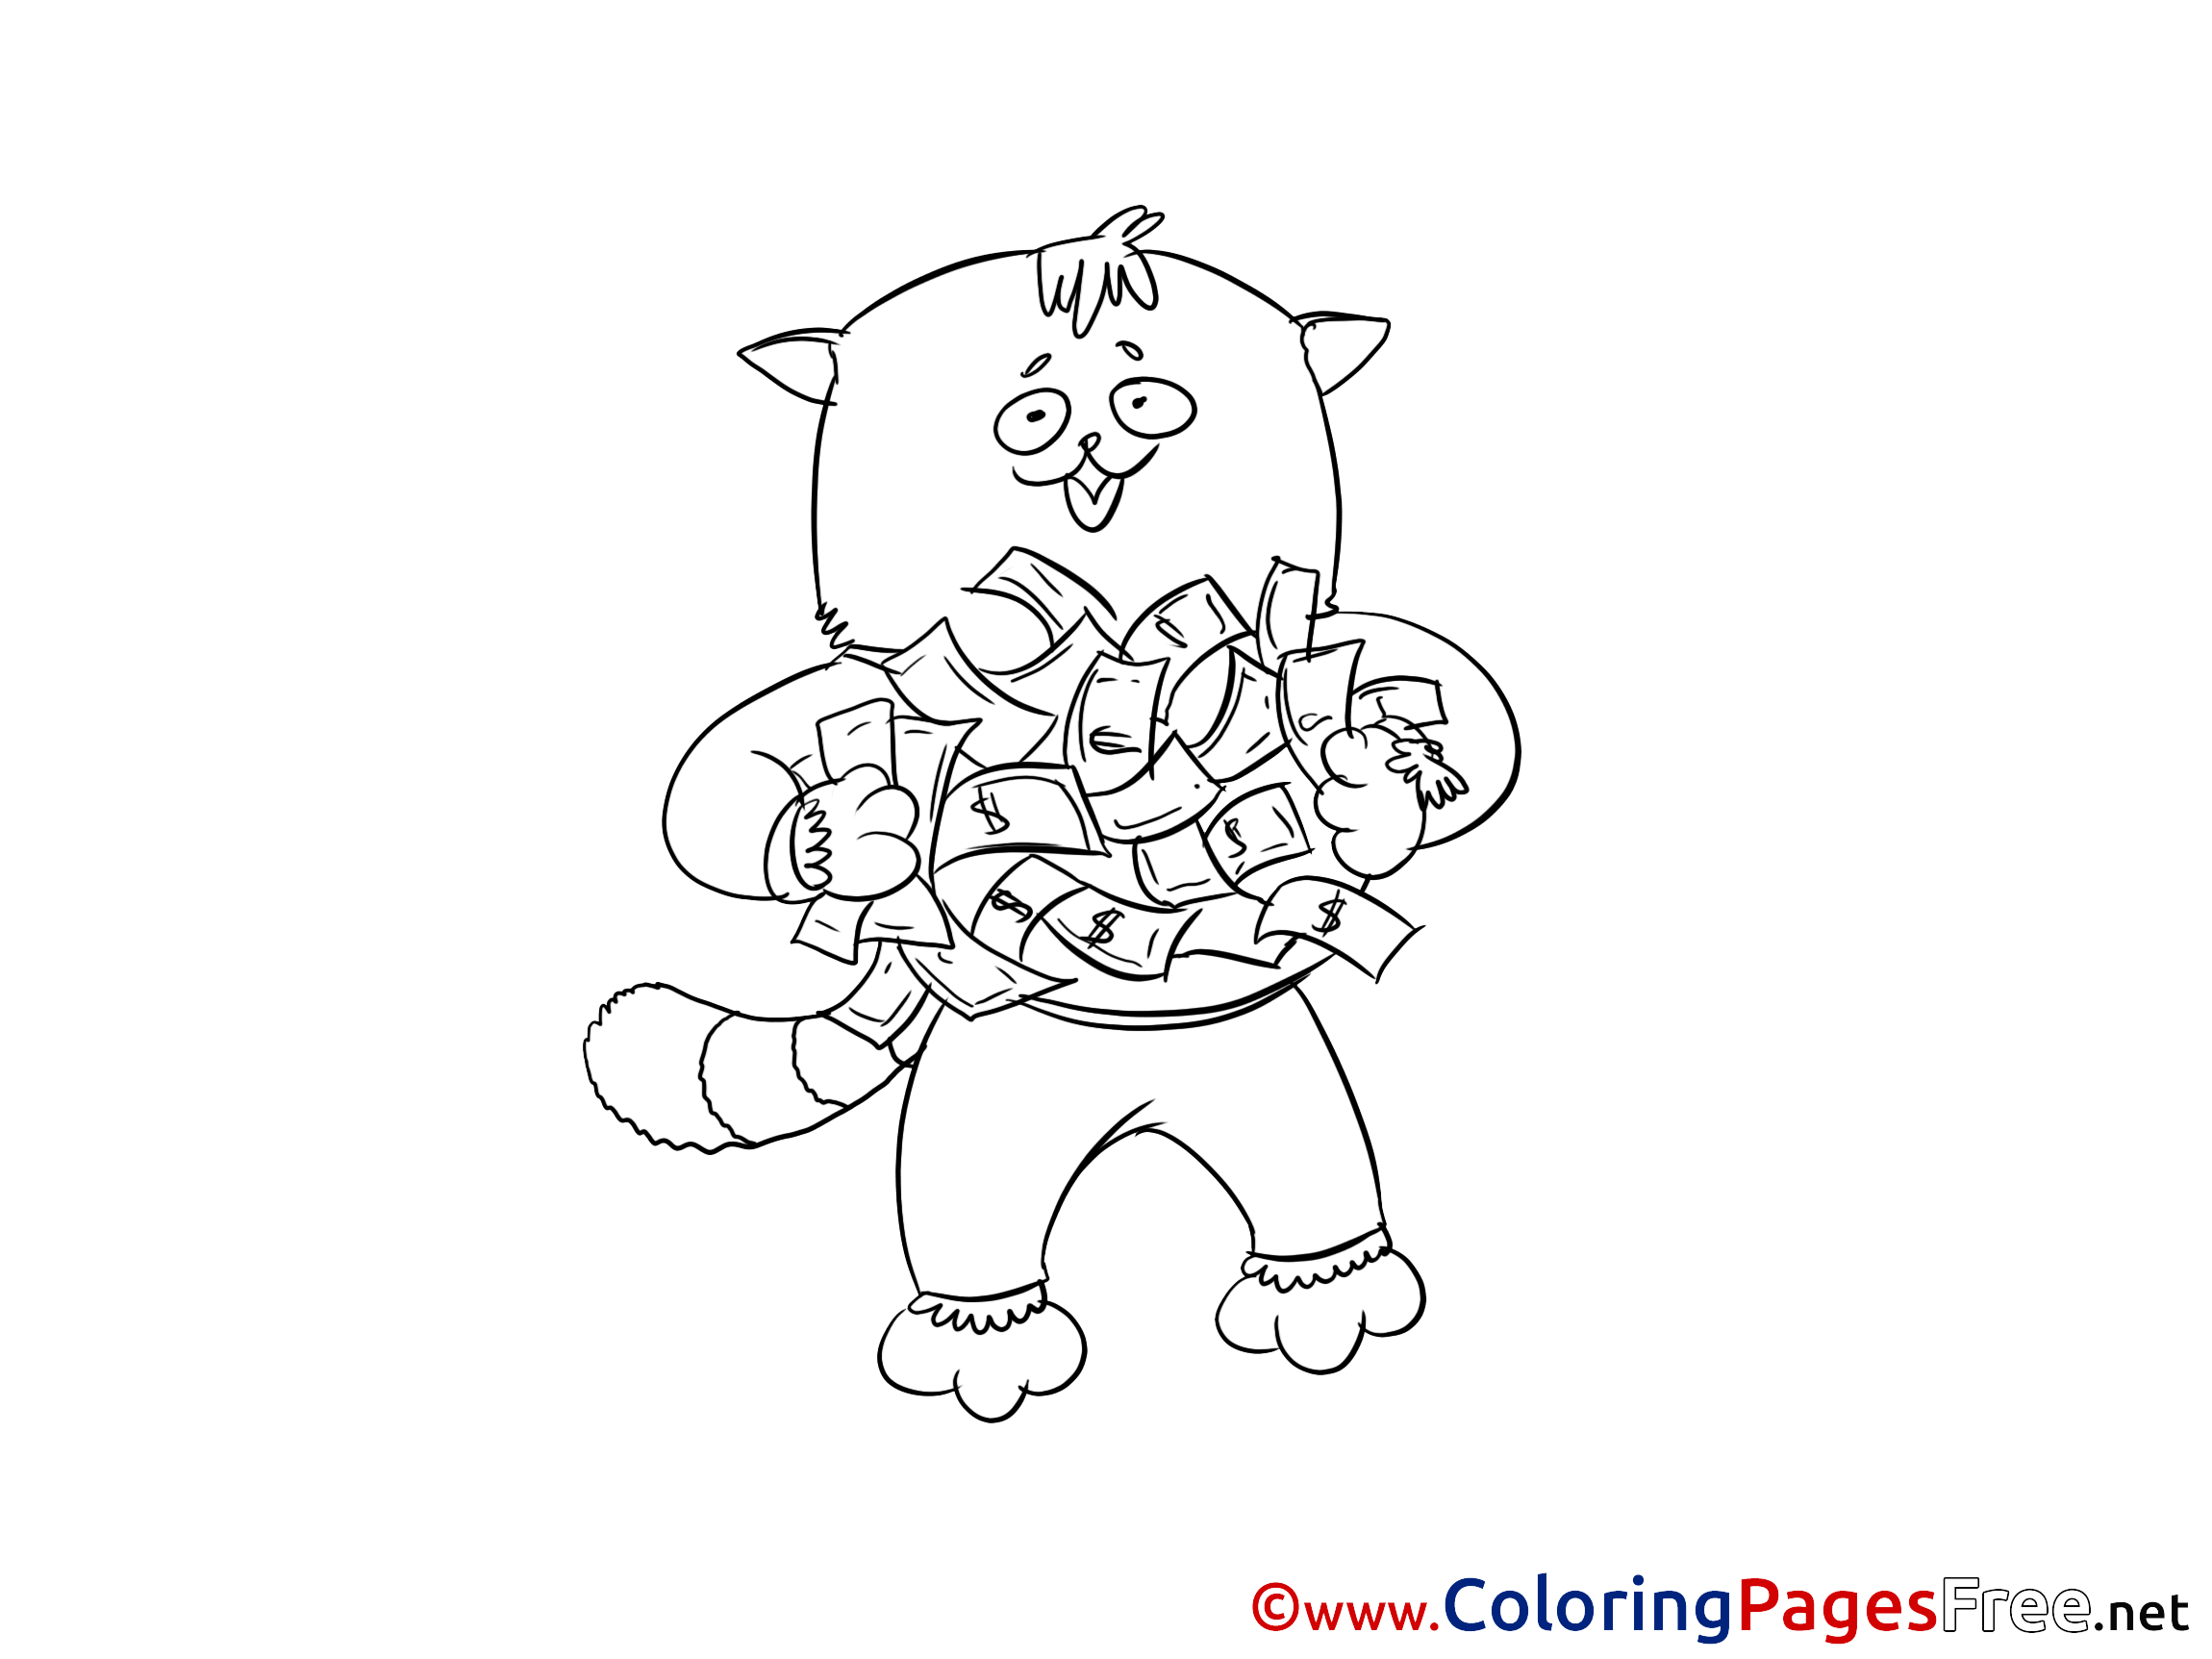 Cat Money for free Coloring Pages download